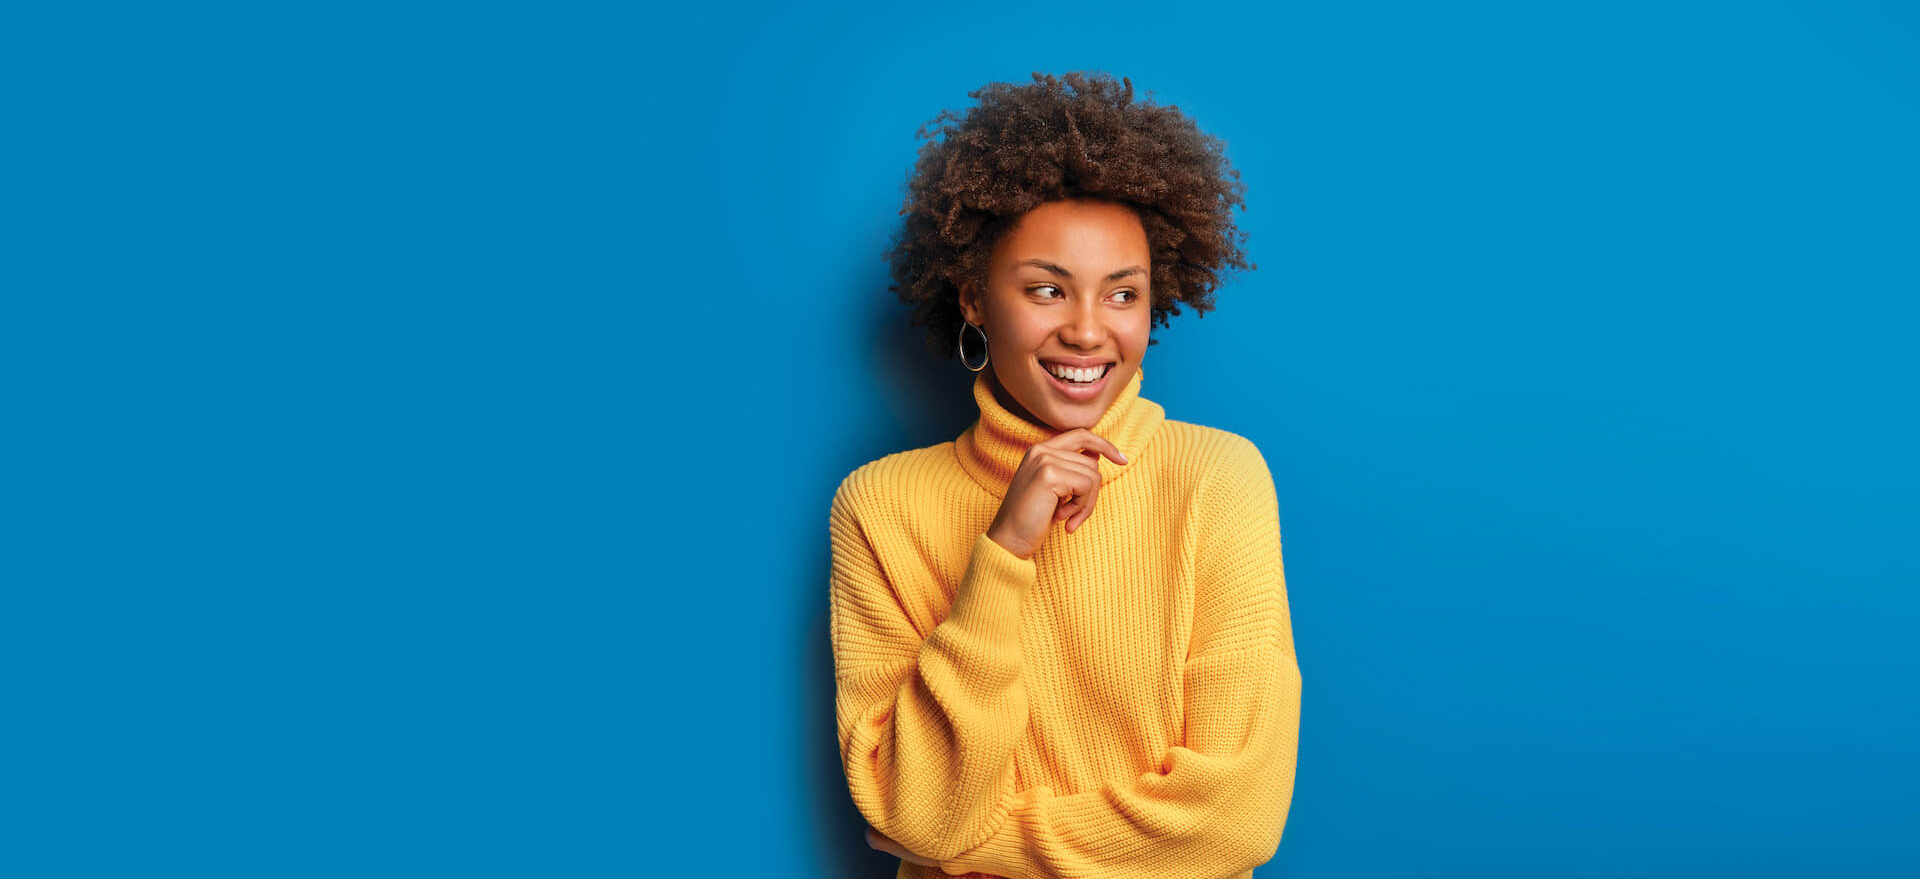 Woman standing infront of blue background in yellow sweater smiling